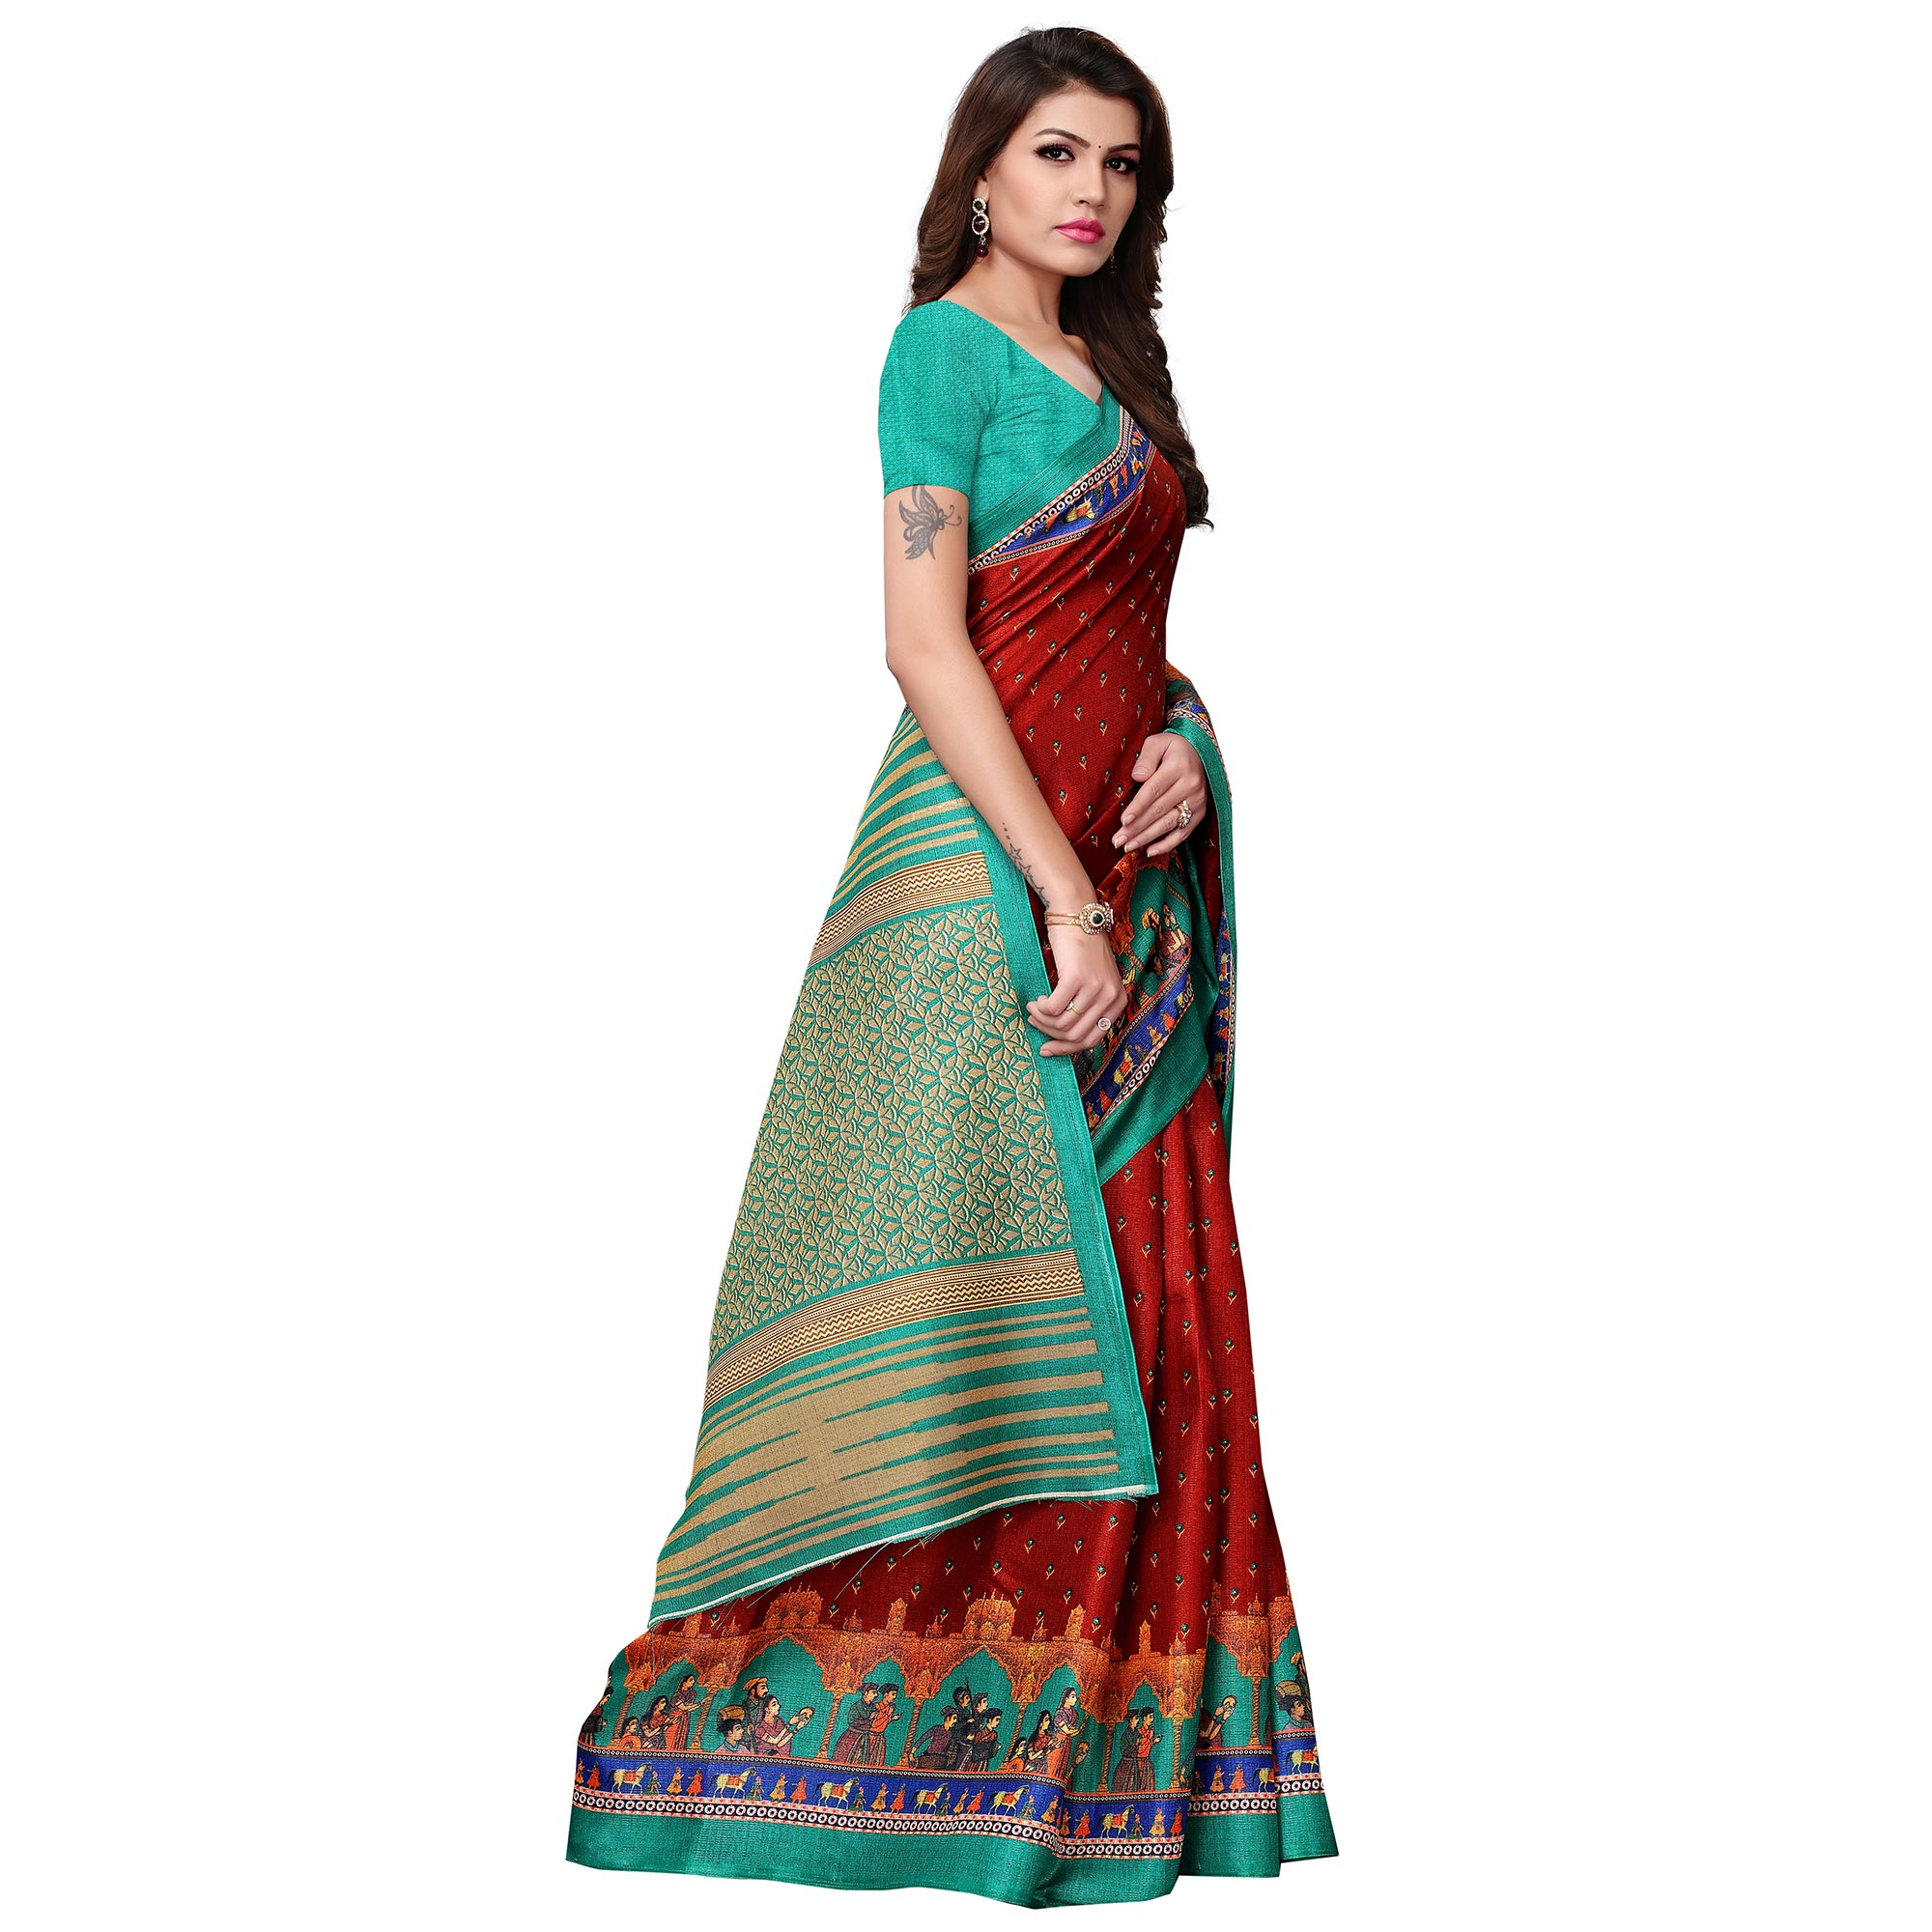 Traditional Maroon-Turquoise Green Colored Casual Printed Khadi Silk Saree